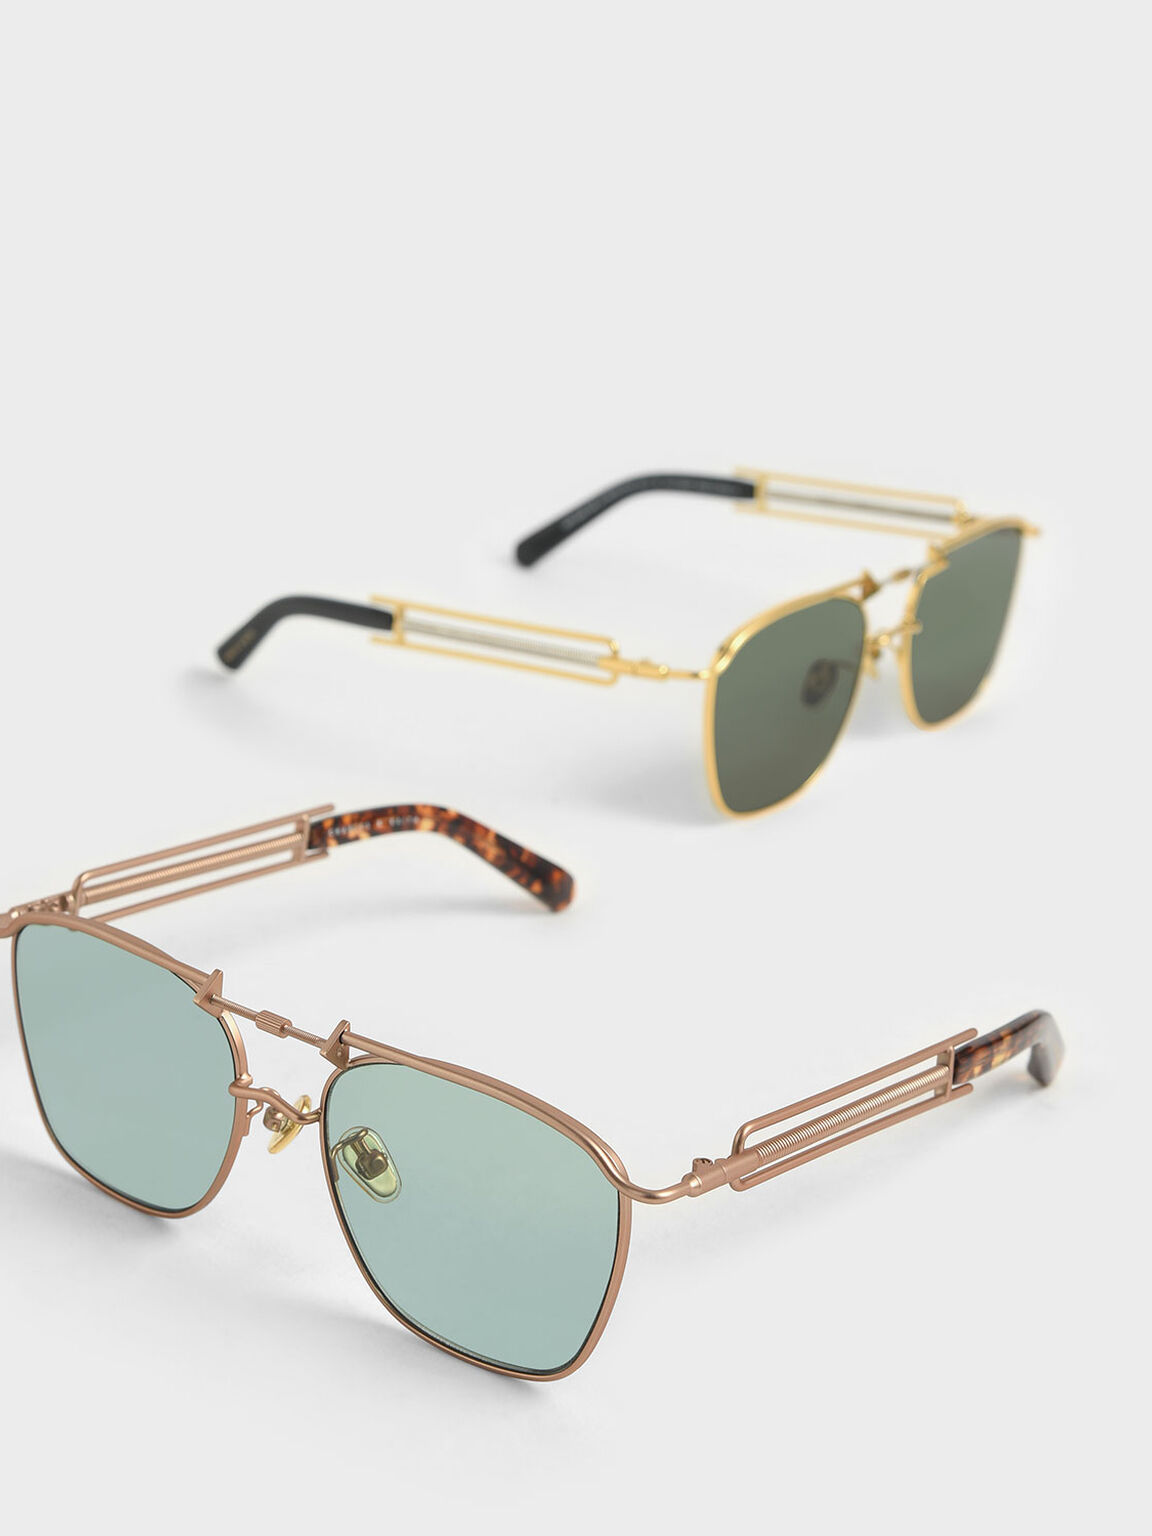 Square Double Bridge Sunglasses, Green, hi-res